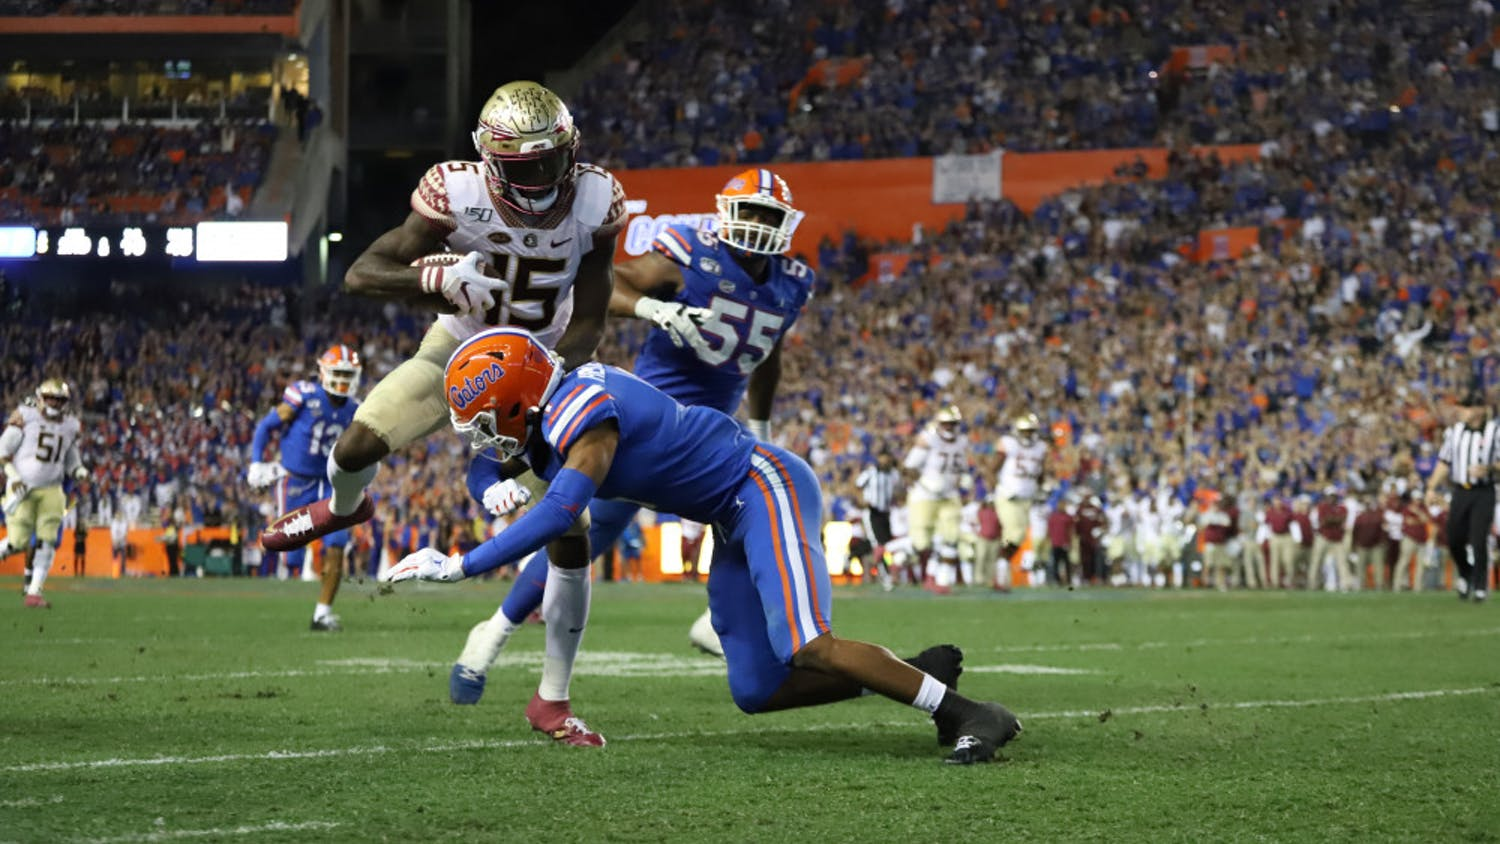 Florida will become the first state to allow student-athletes to receive compensation